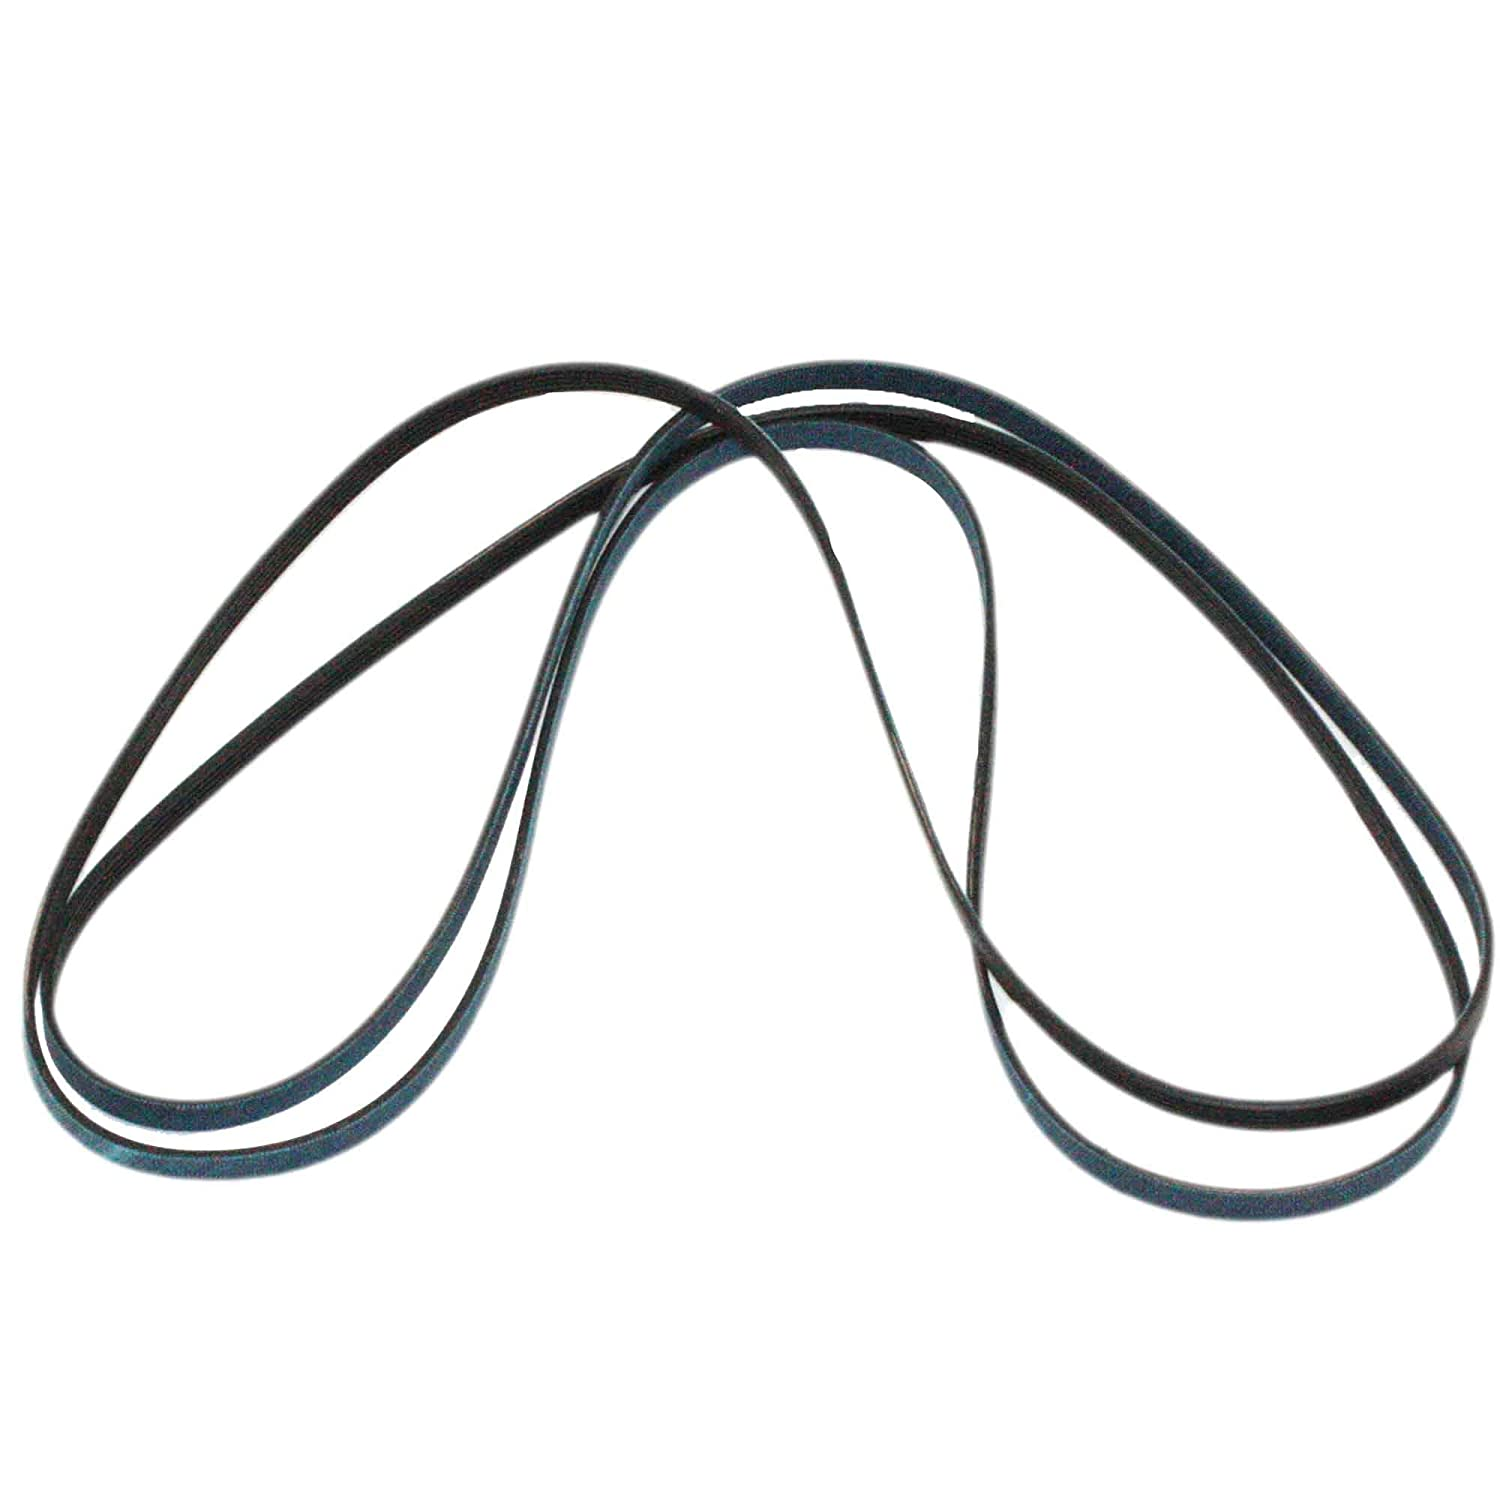 Supplying Demand 33002535 Clothes Dryer Belt Fits Maytag 33001777 63700300